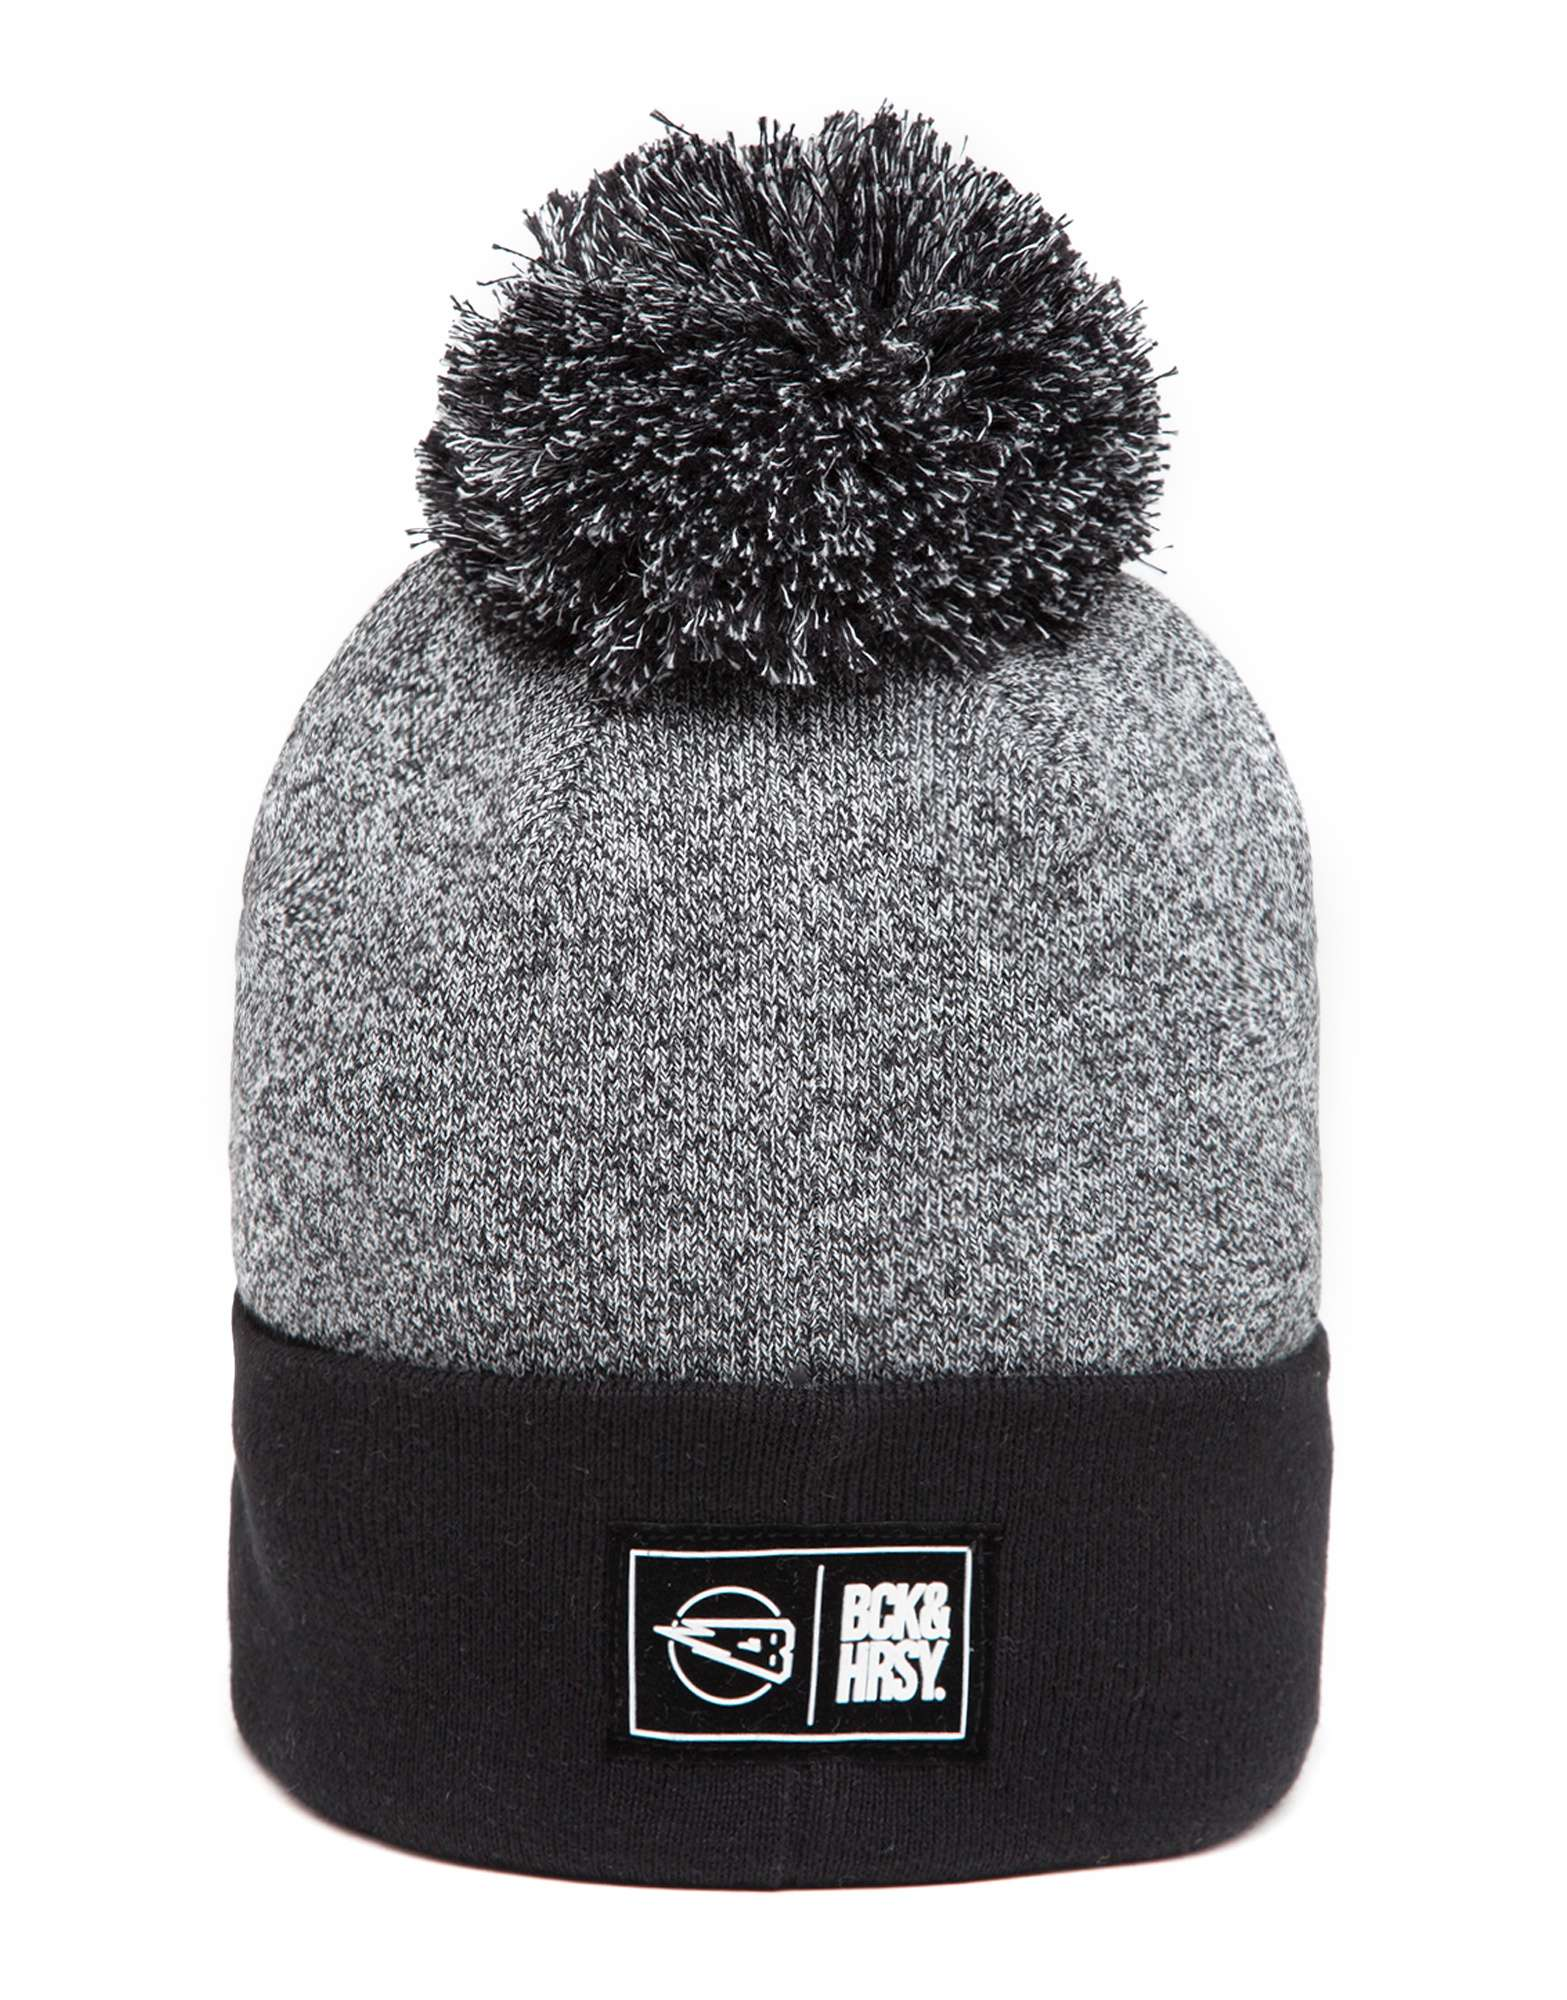 Beck and Hersey Dopeness Bobble Hat